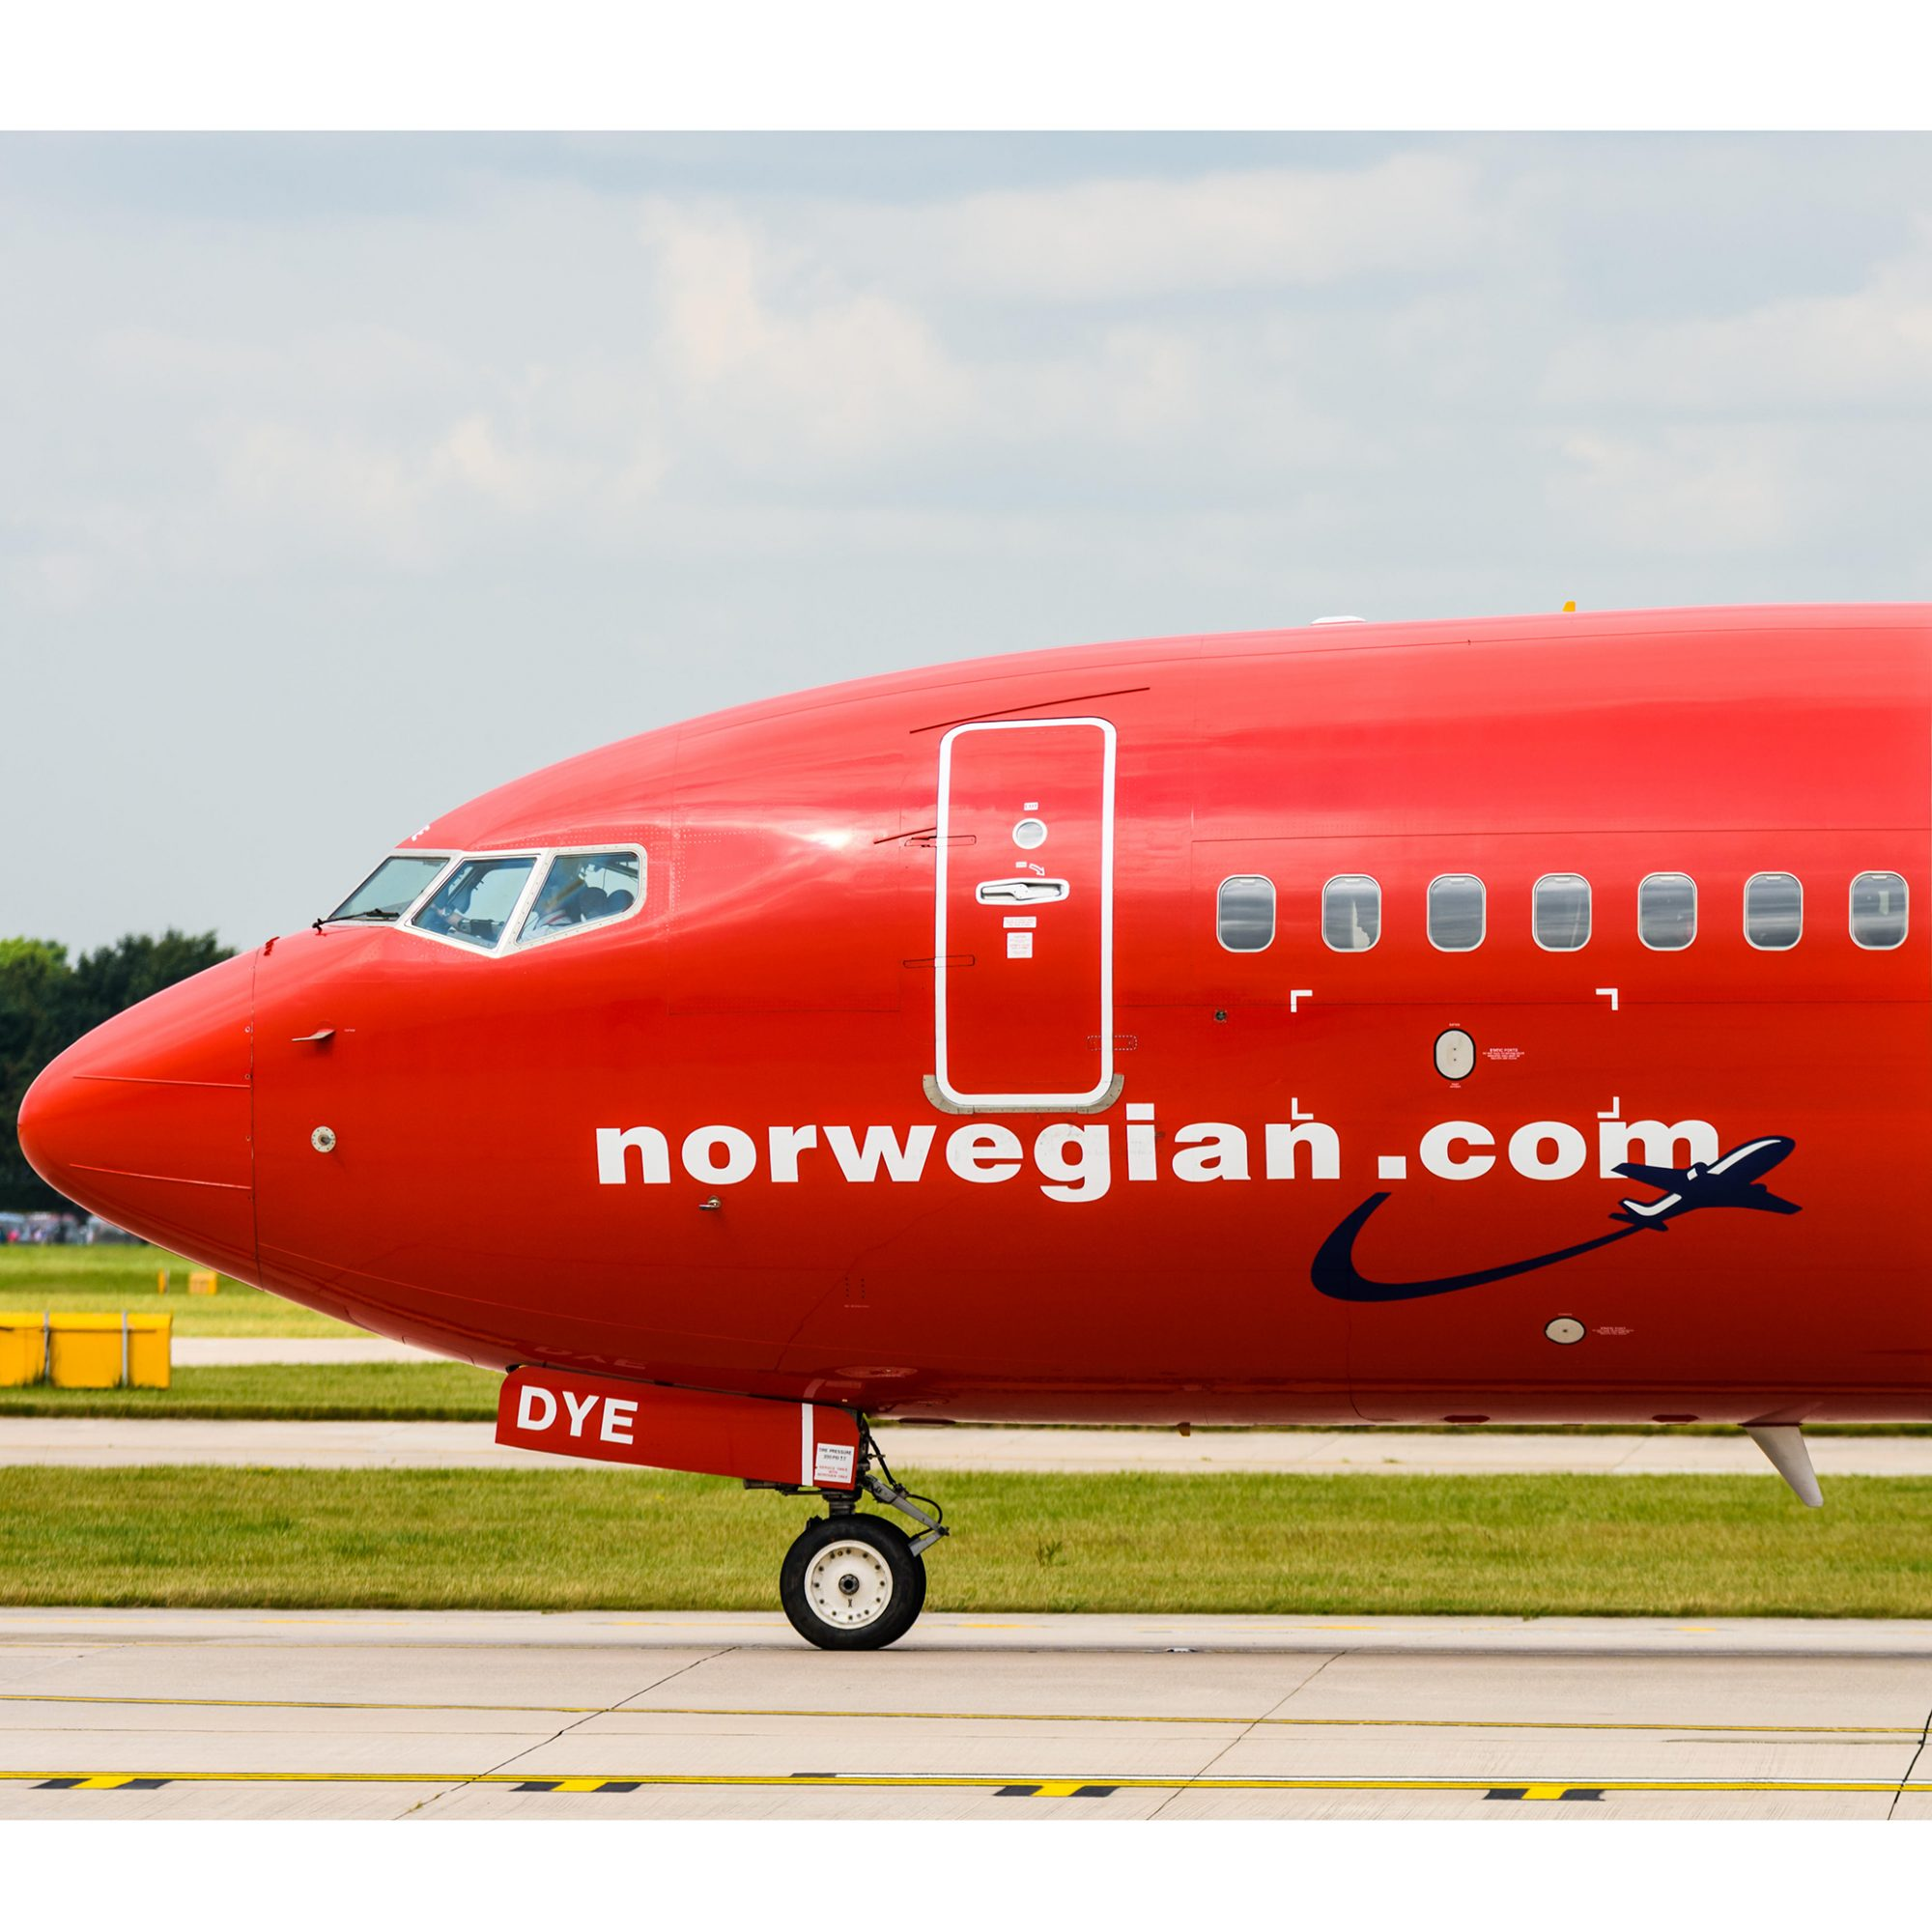 FWX CHEAP FARES ON NORWEGIAN AIRLINES